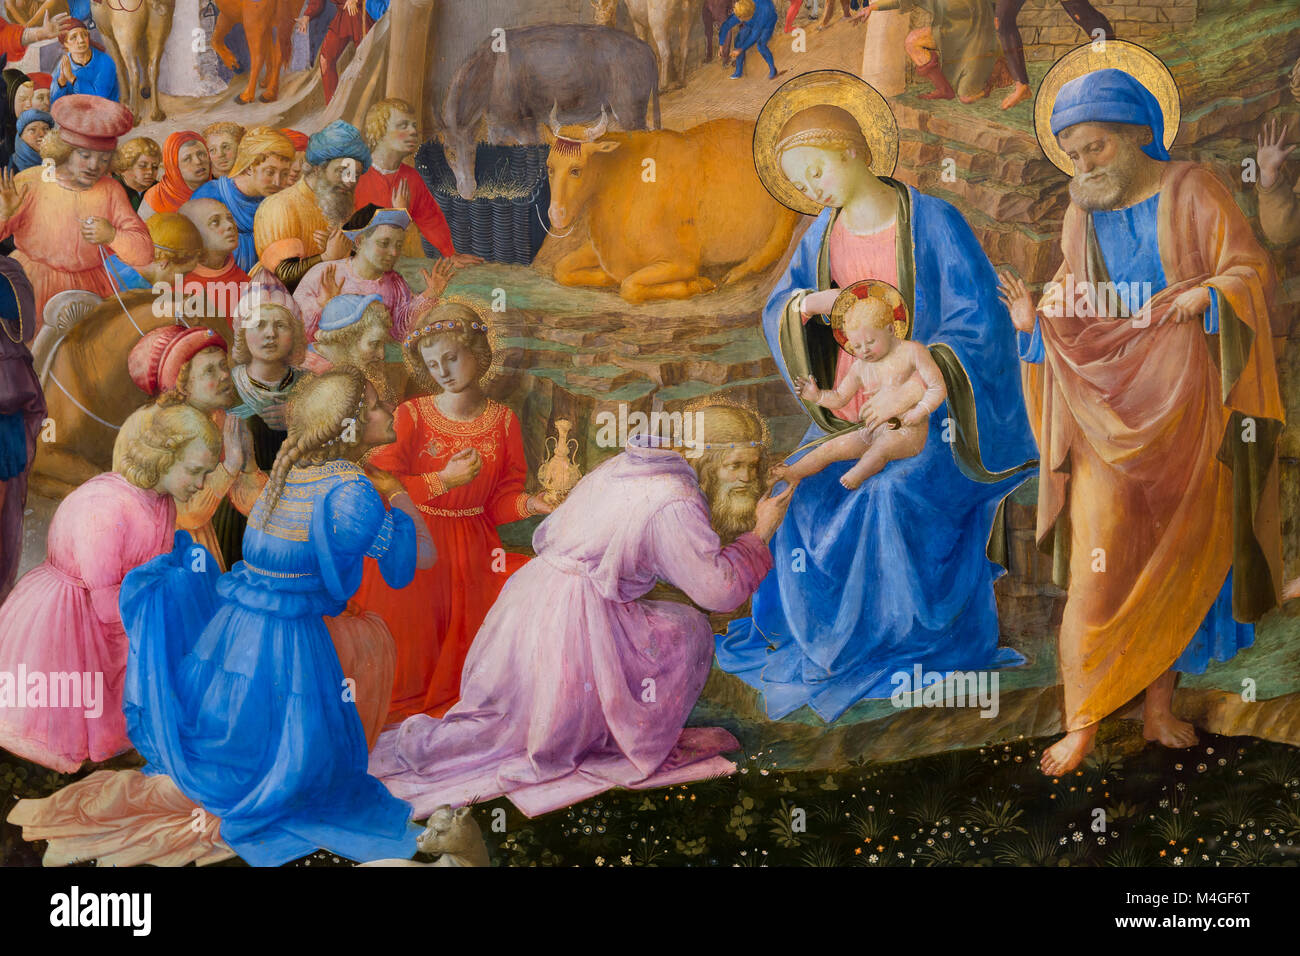 Detail, The Adoration of the Magi, Fra Angelico and Fra Filippo Lippi, circa 1440-1460, National Gallery of Art, - Stock Image